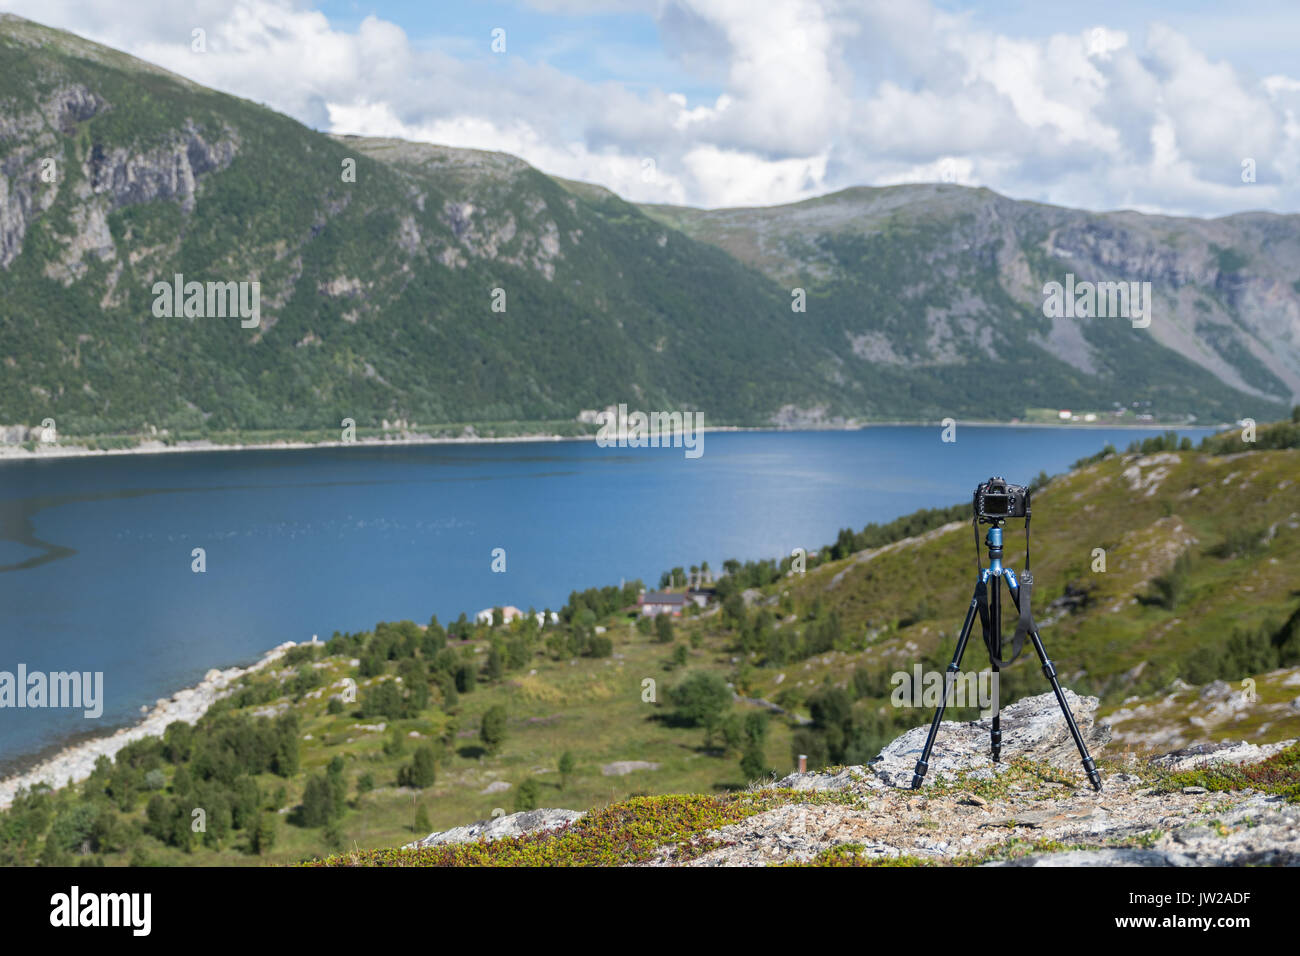 Black camera on tripod taking time lapse pictures - Stock Image